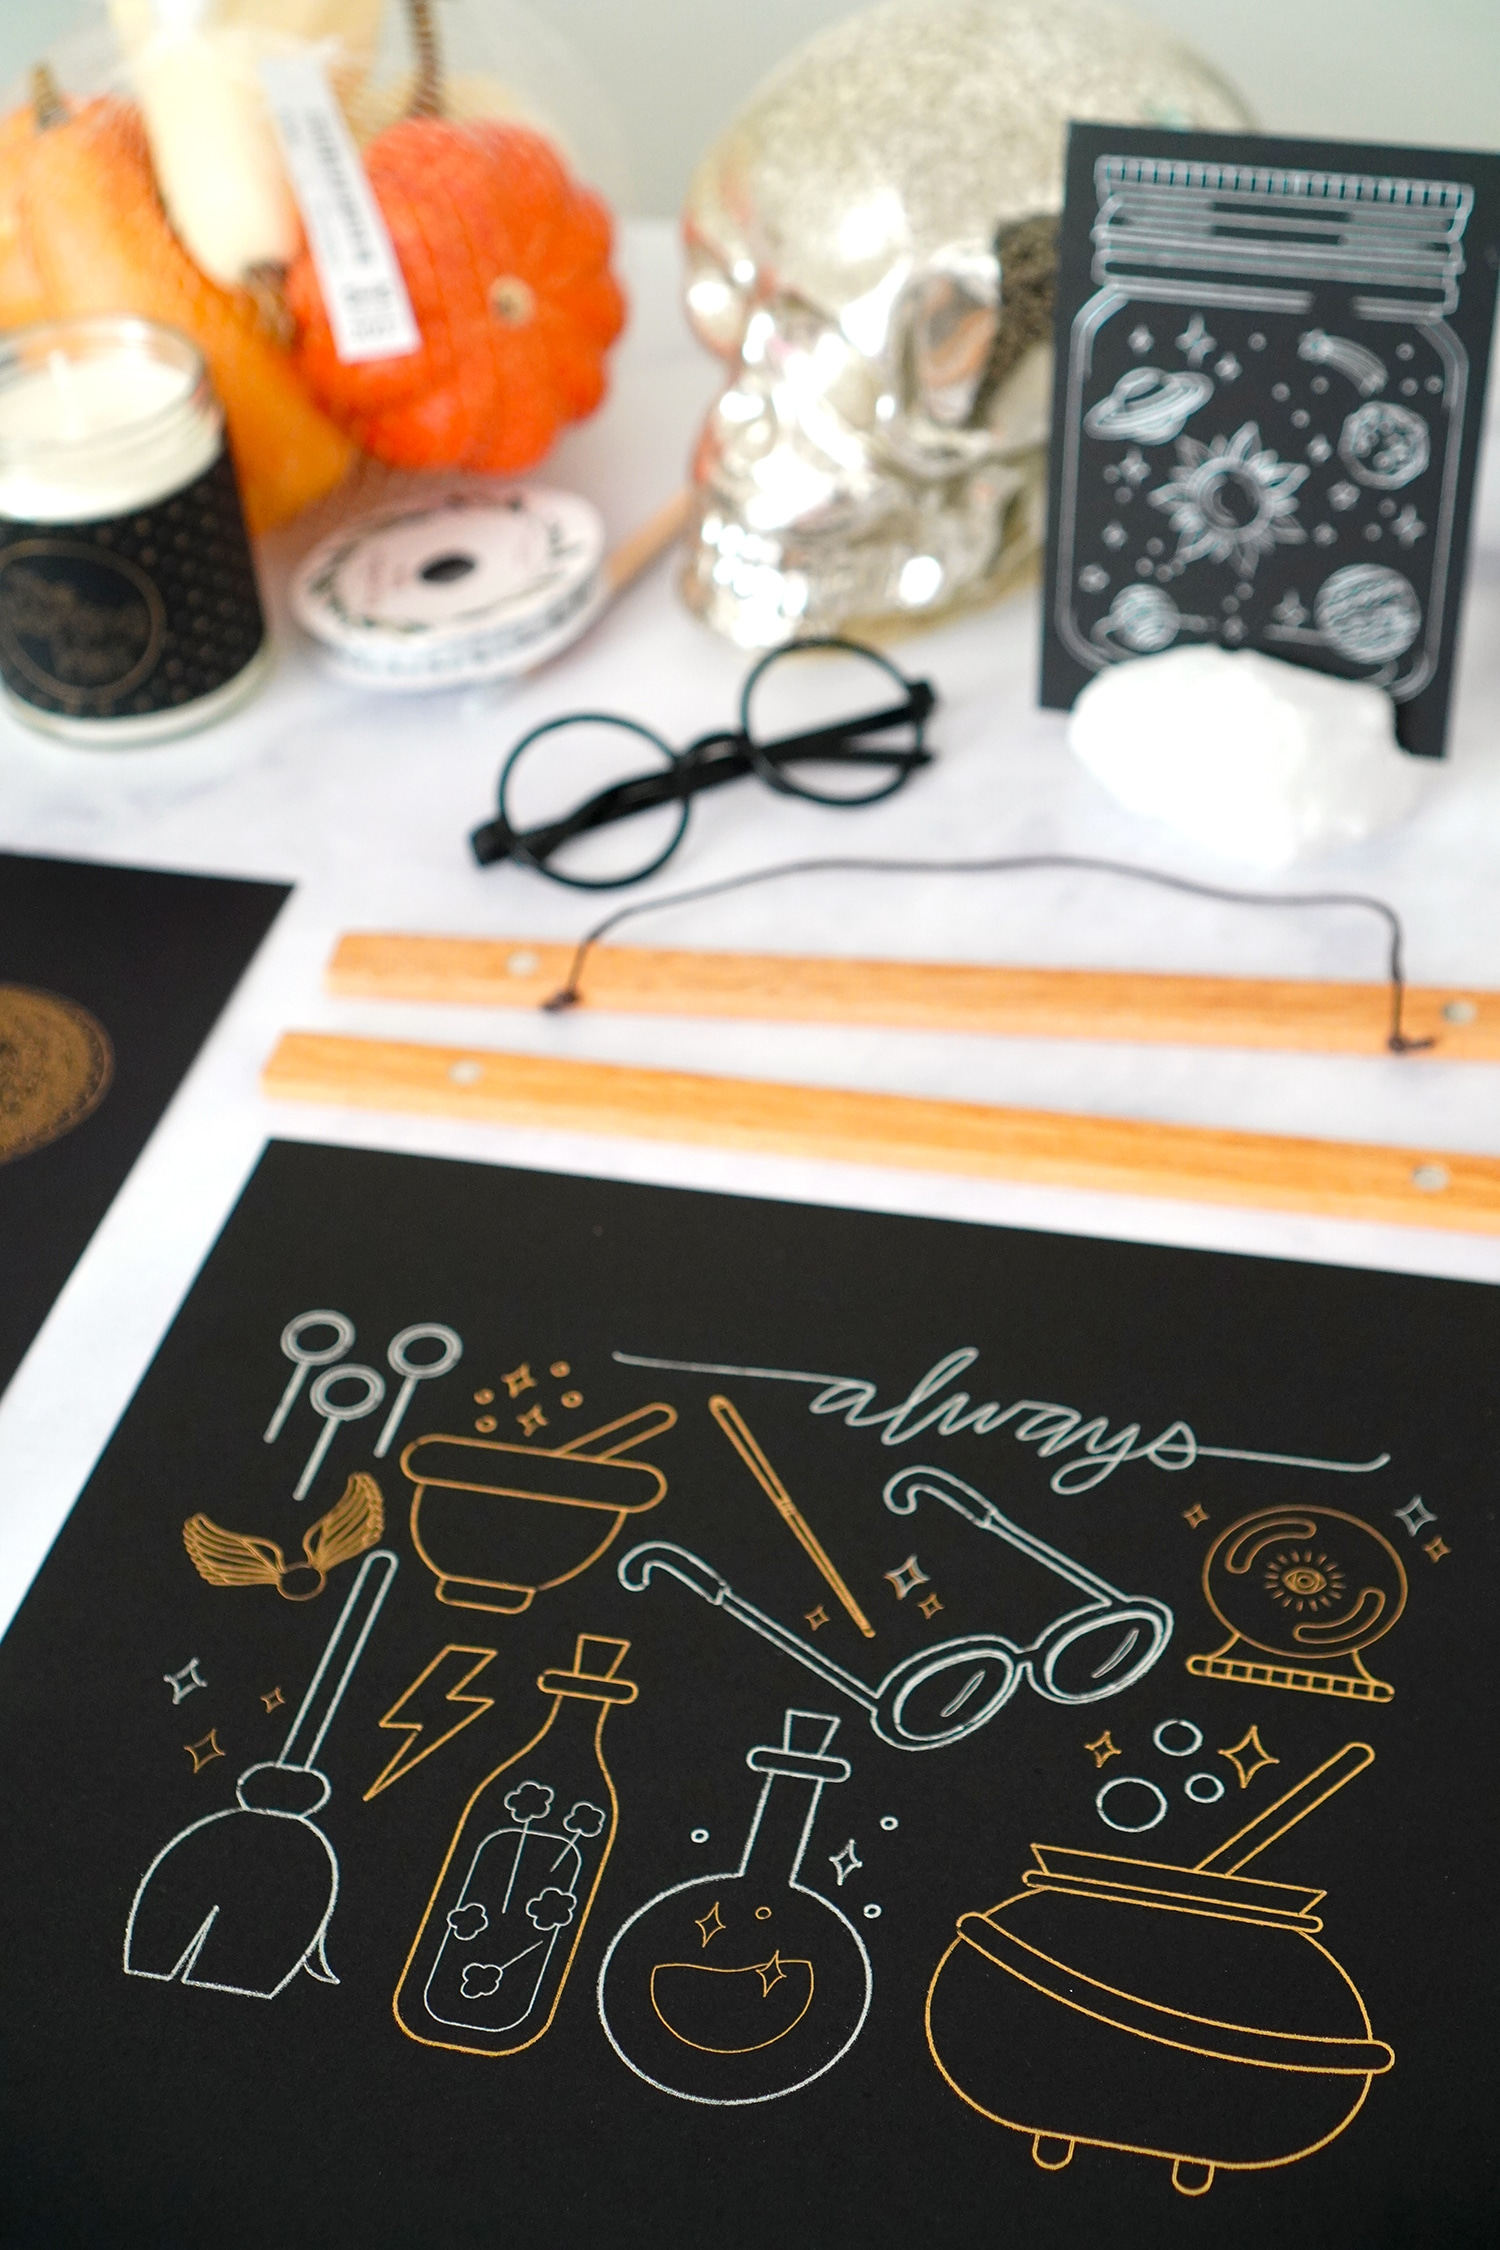 Harry Potter inspired gold and silver foil artwork on table with picture hangers and Halloween props